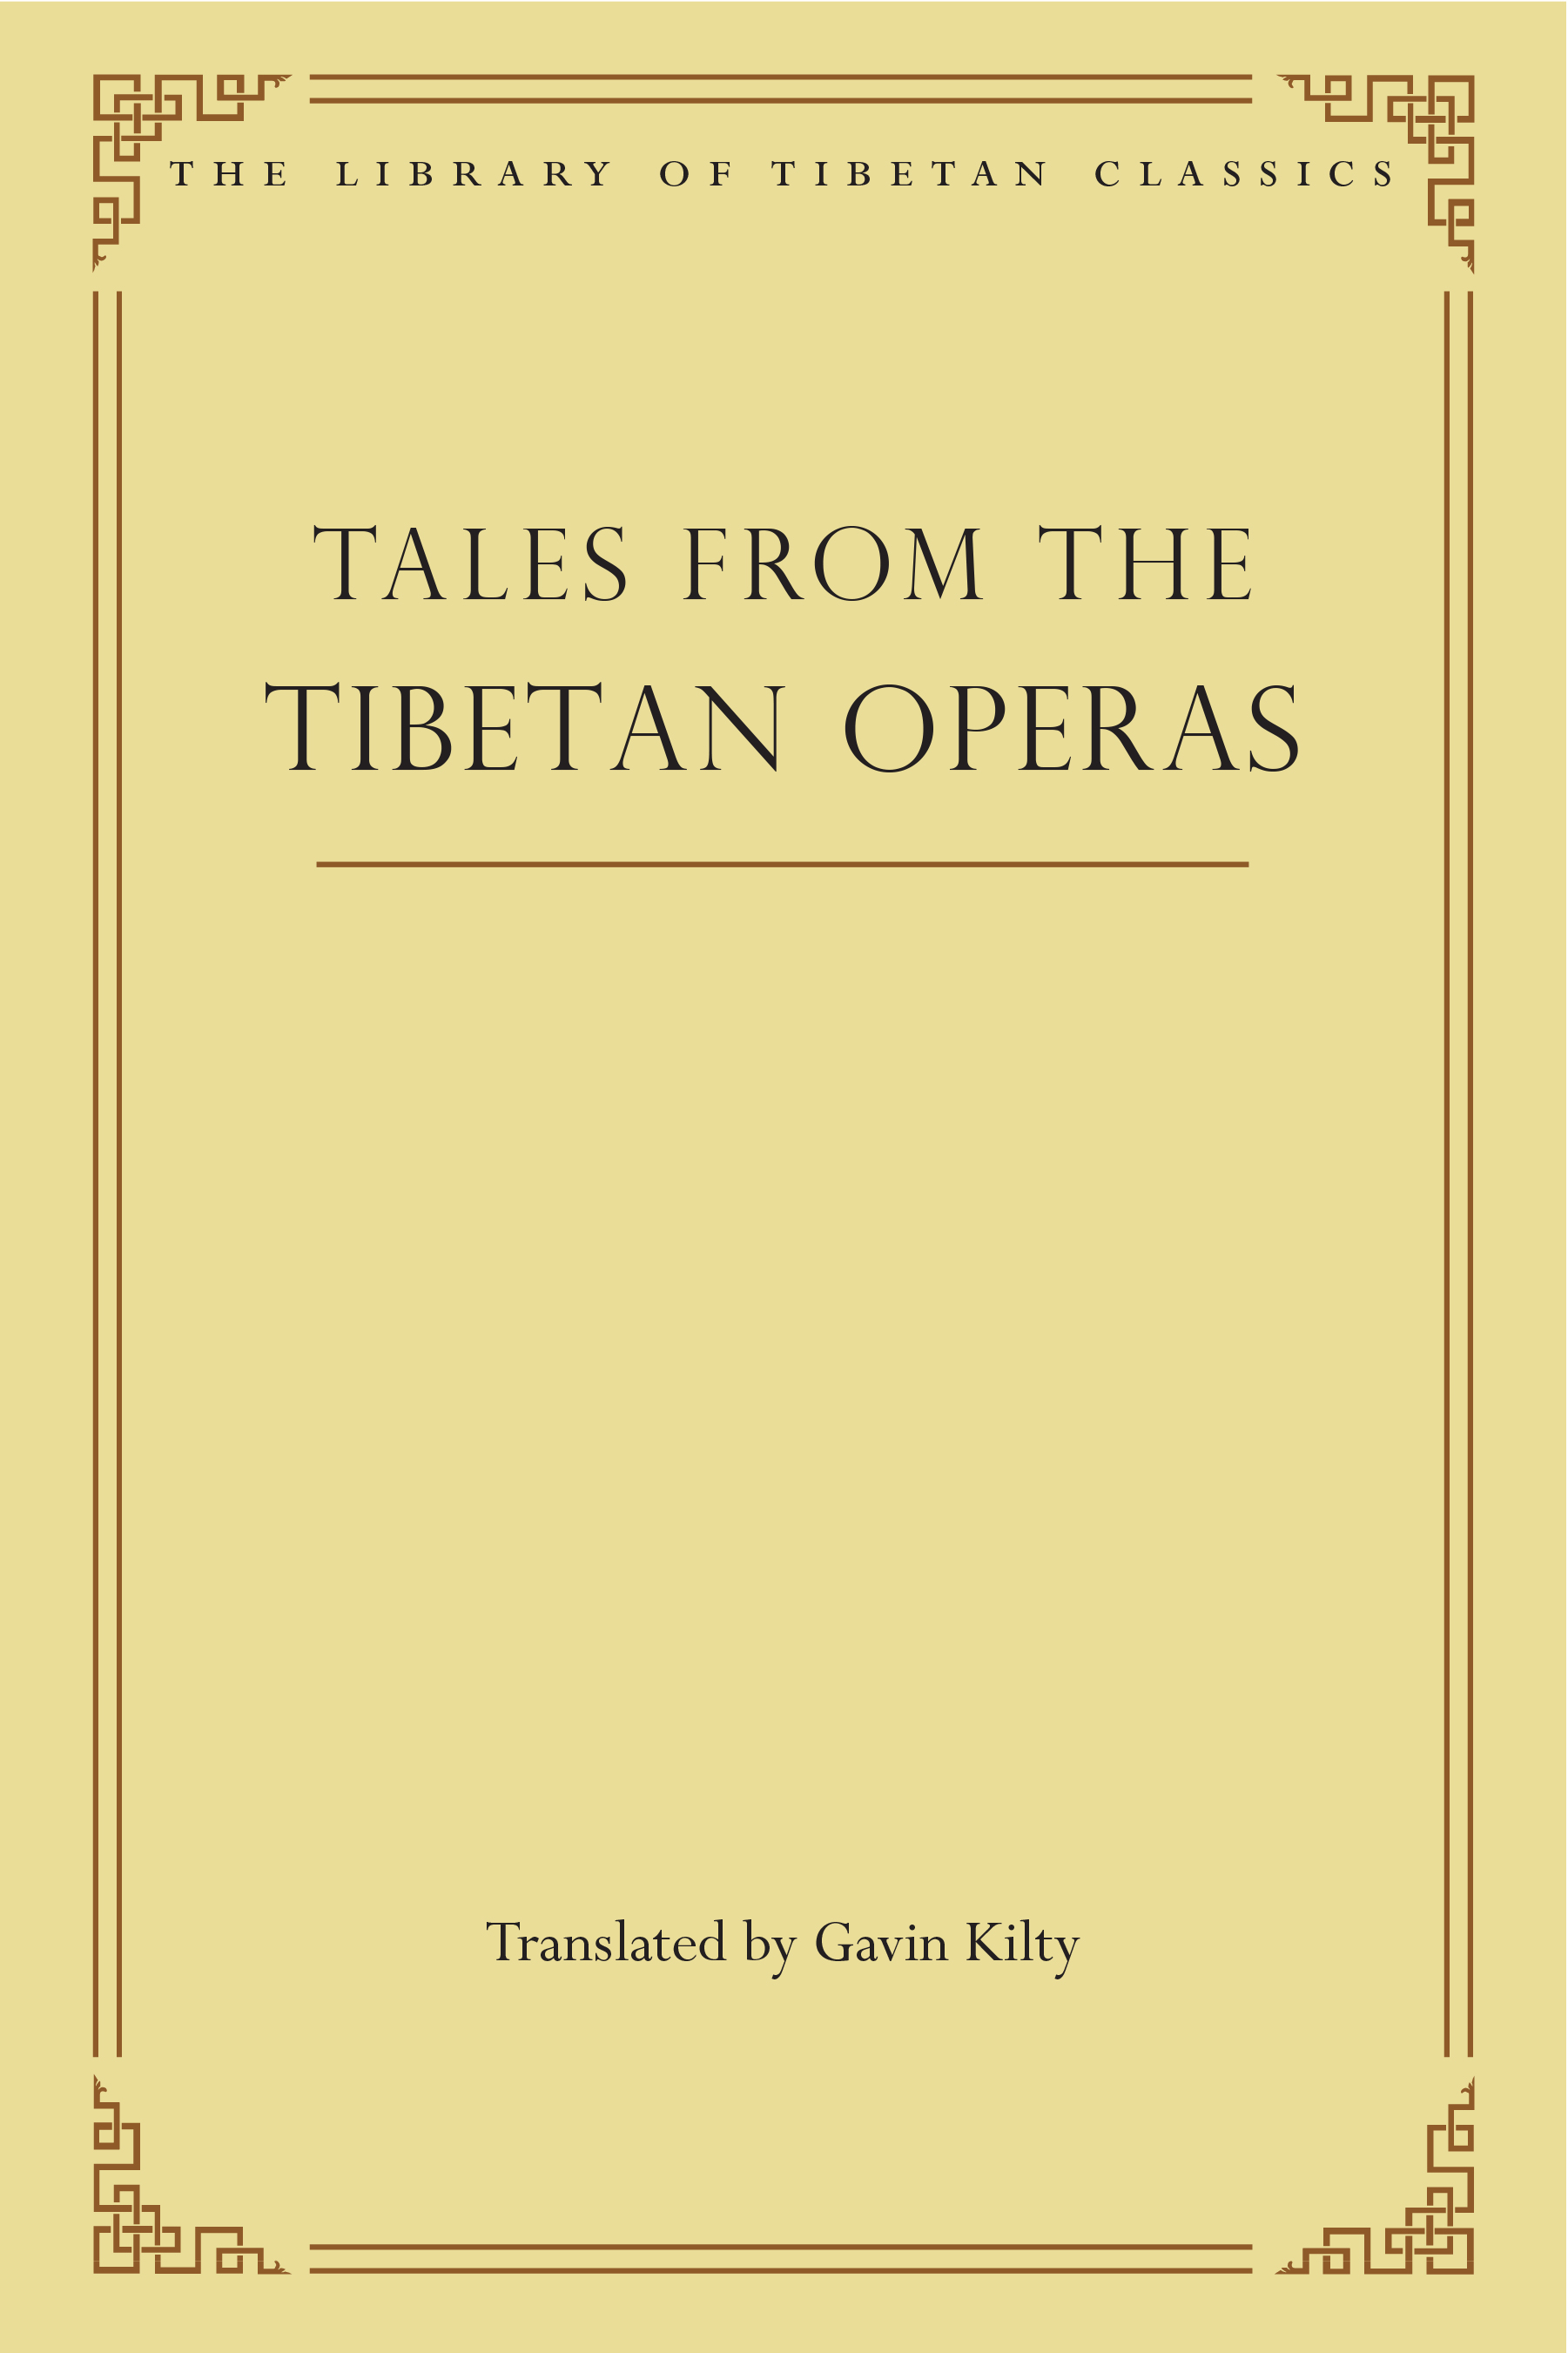 Tales from the Tibetan Operas